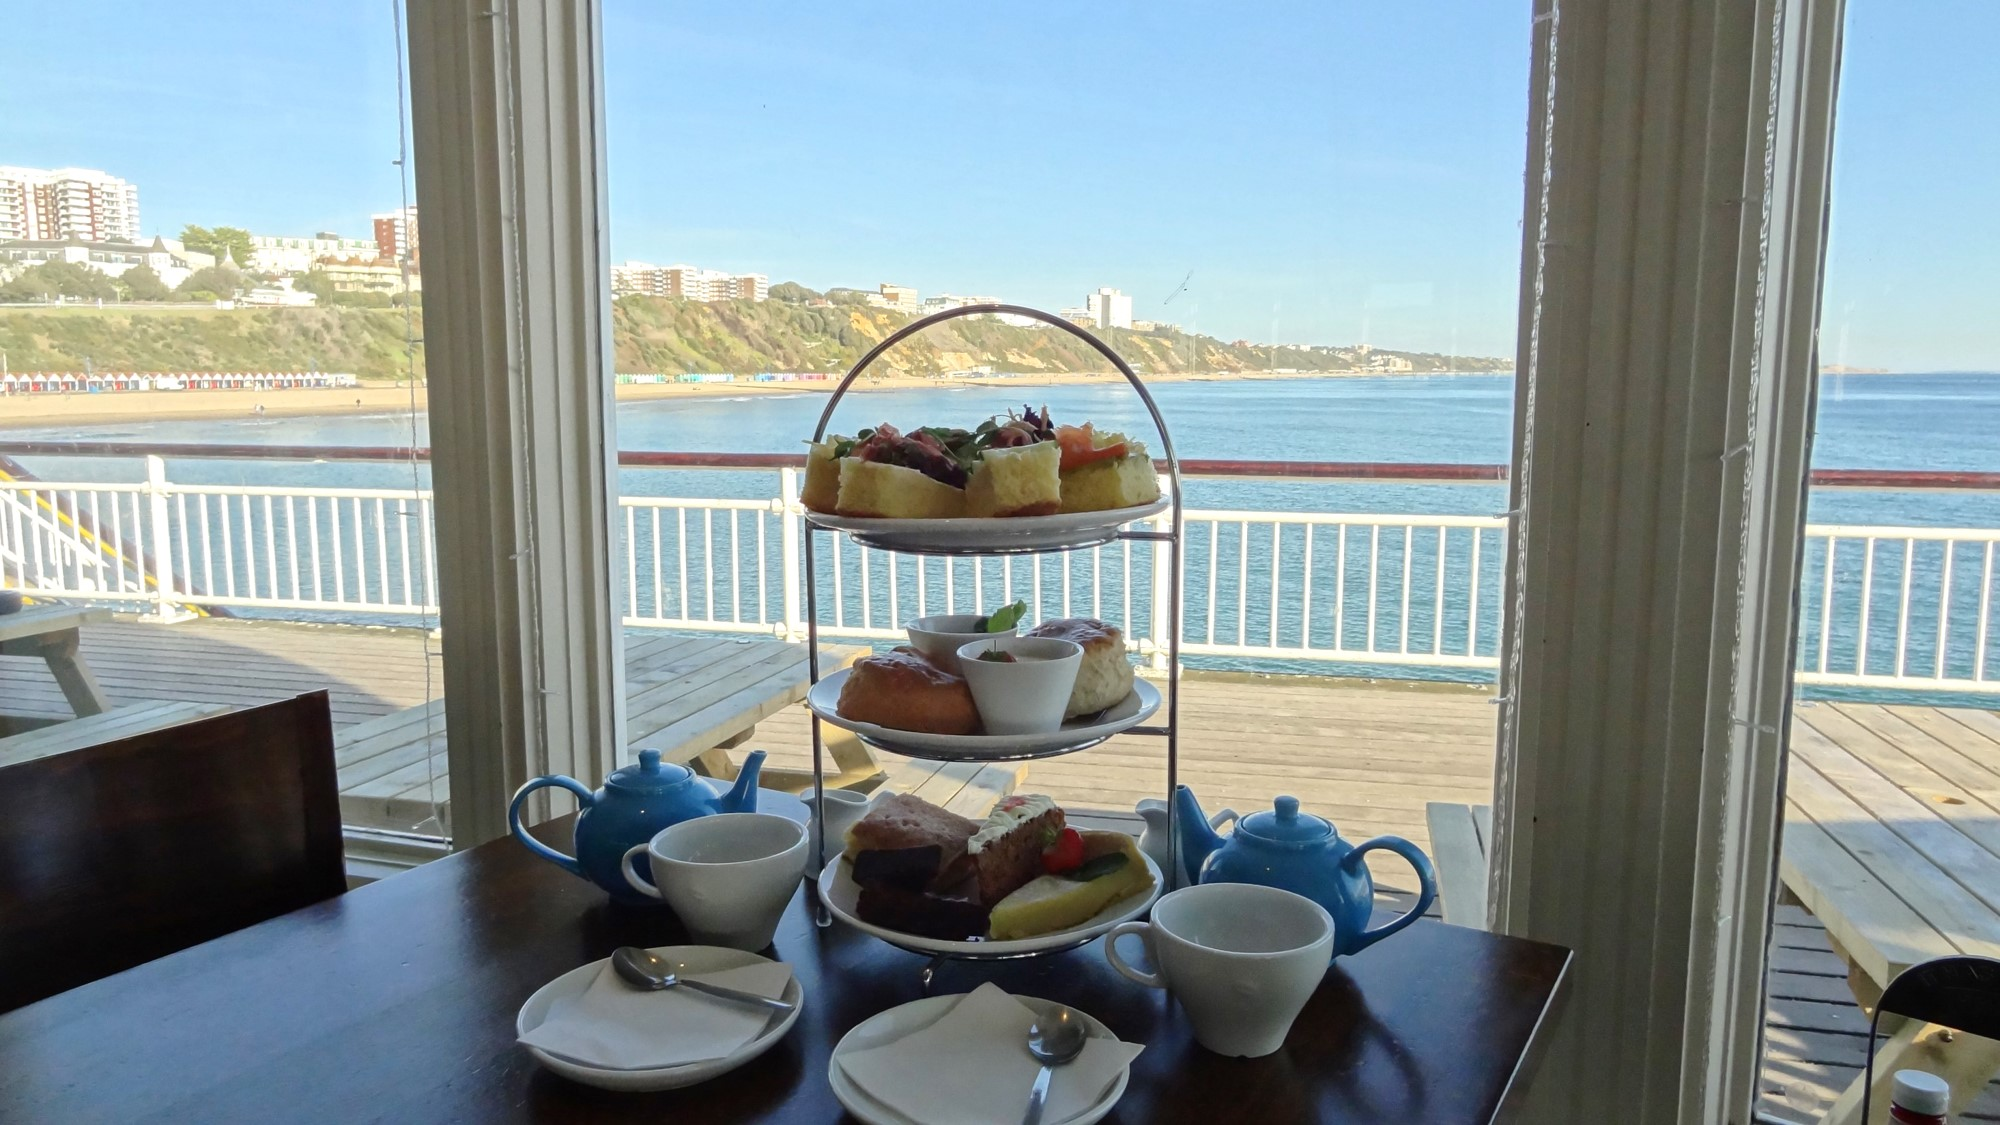 Afternoon Tea - Sunny Day